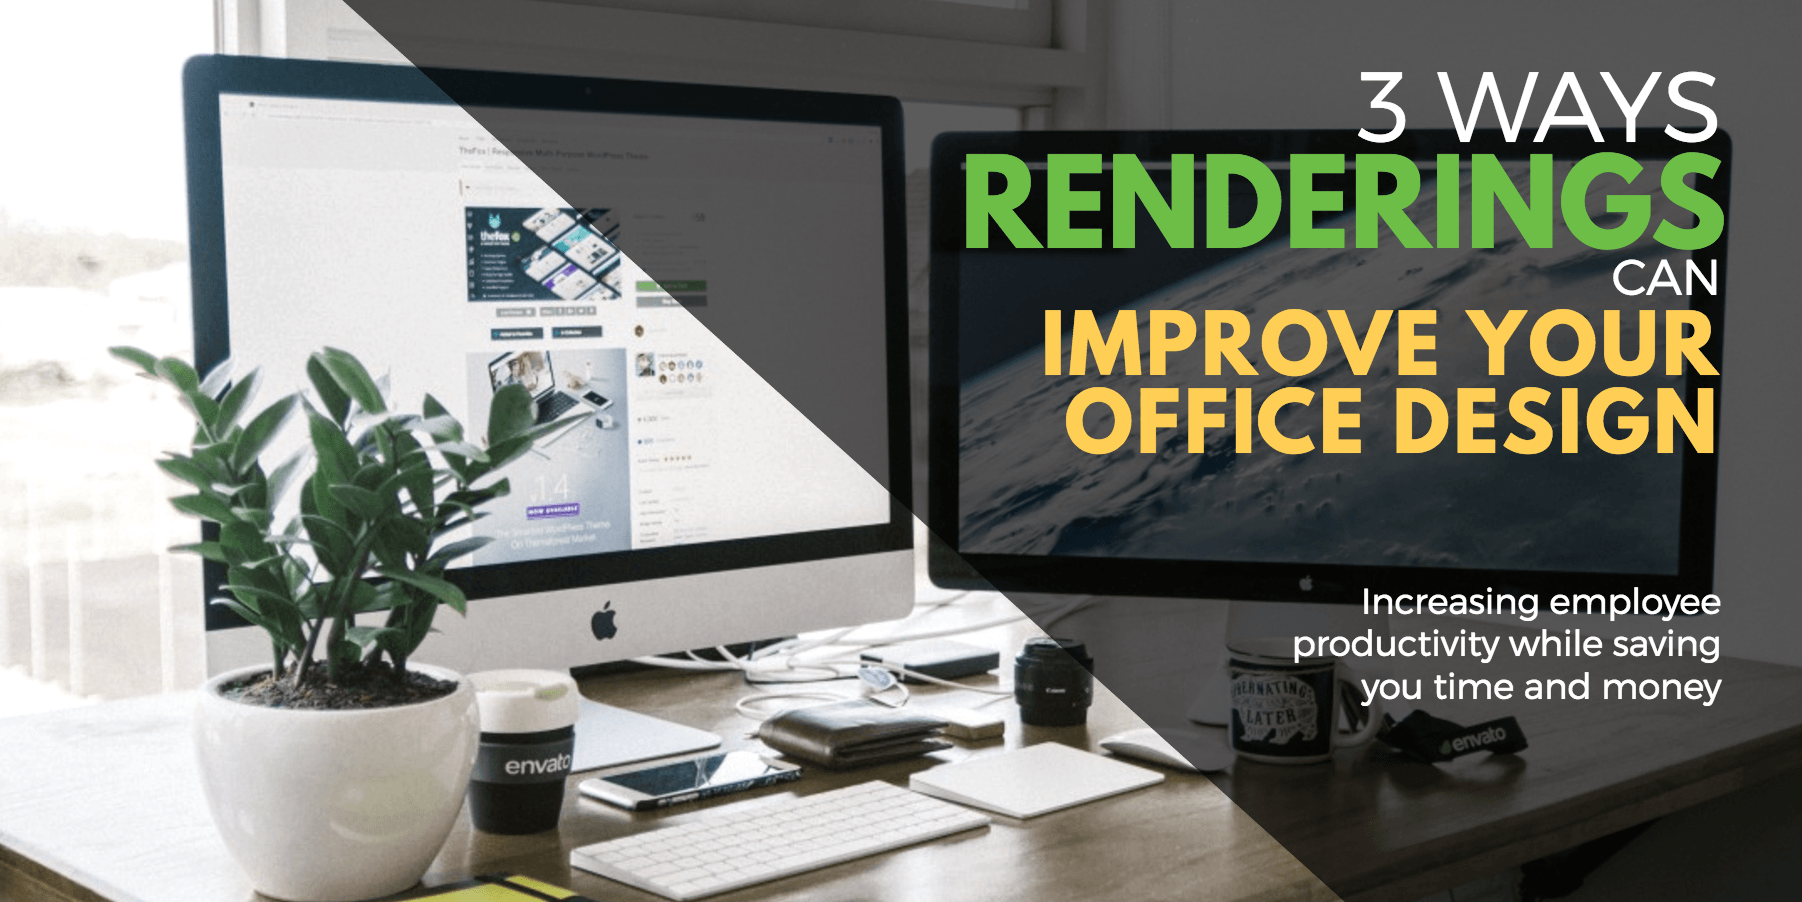 3 Ways Renderings Can Improve Your Office Design